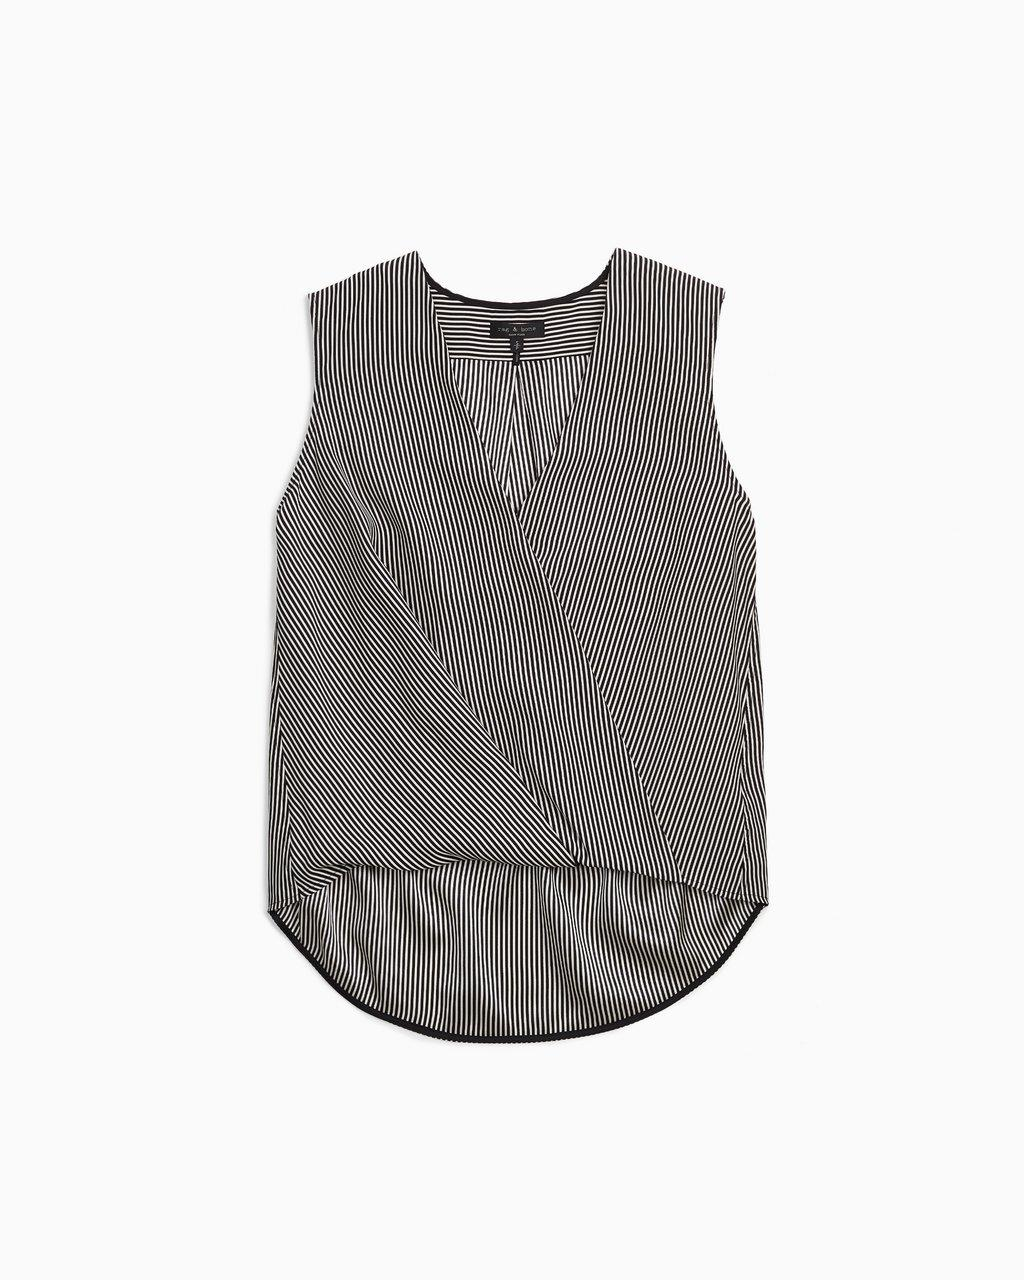 SLEEVELESS VICTOR BLOUSE